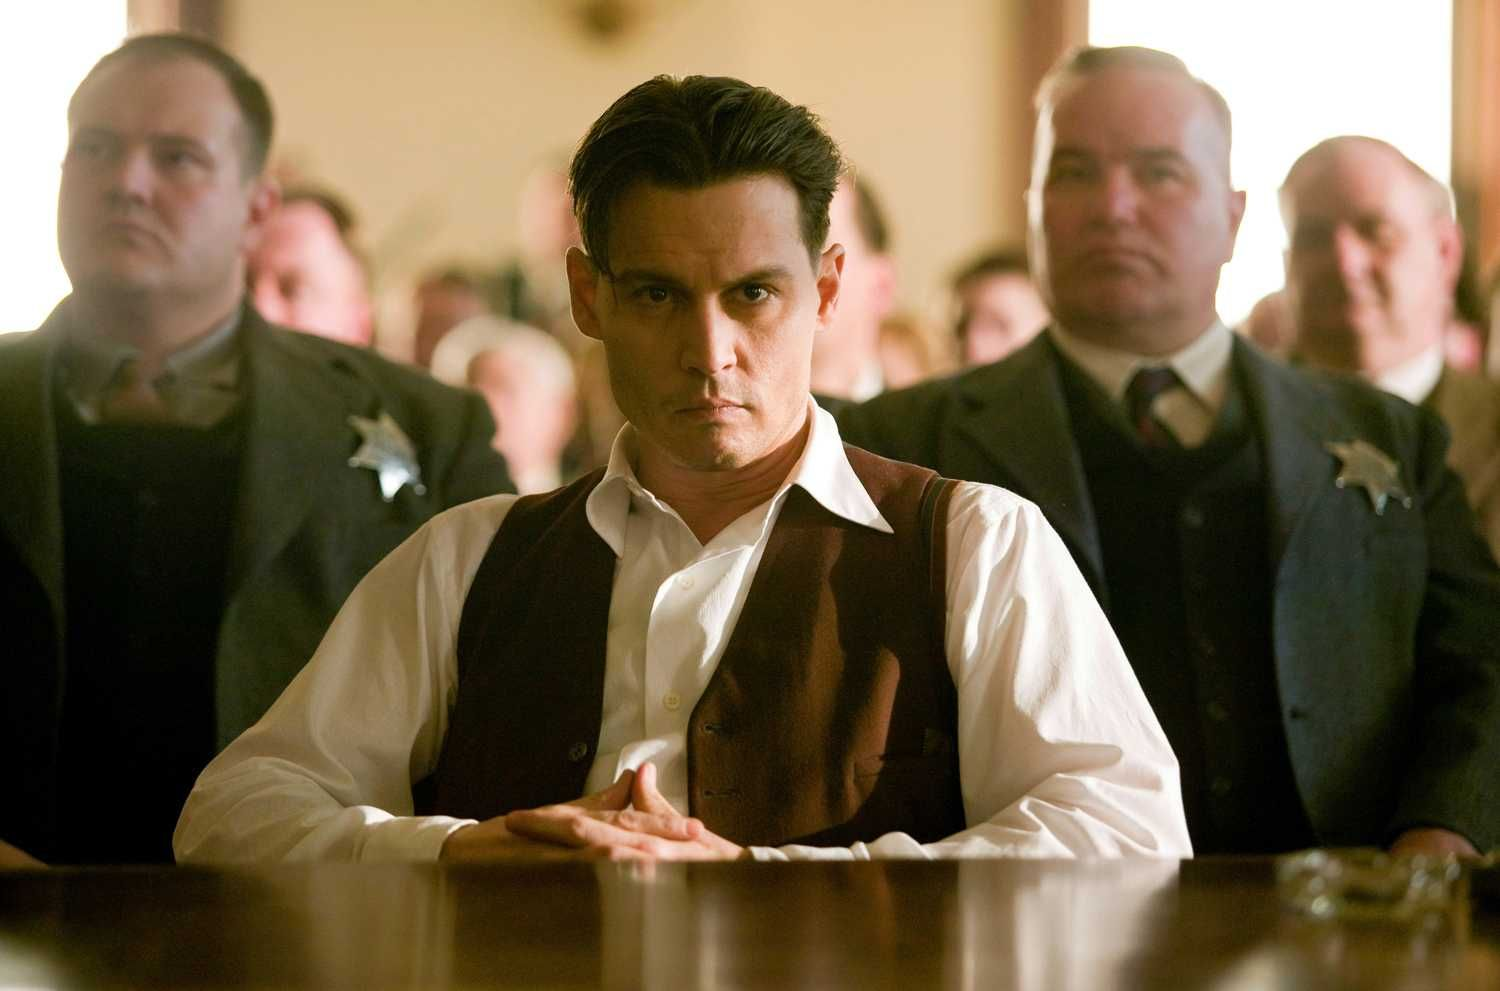 public enemies movie image Johnny Depp (1).jpg